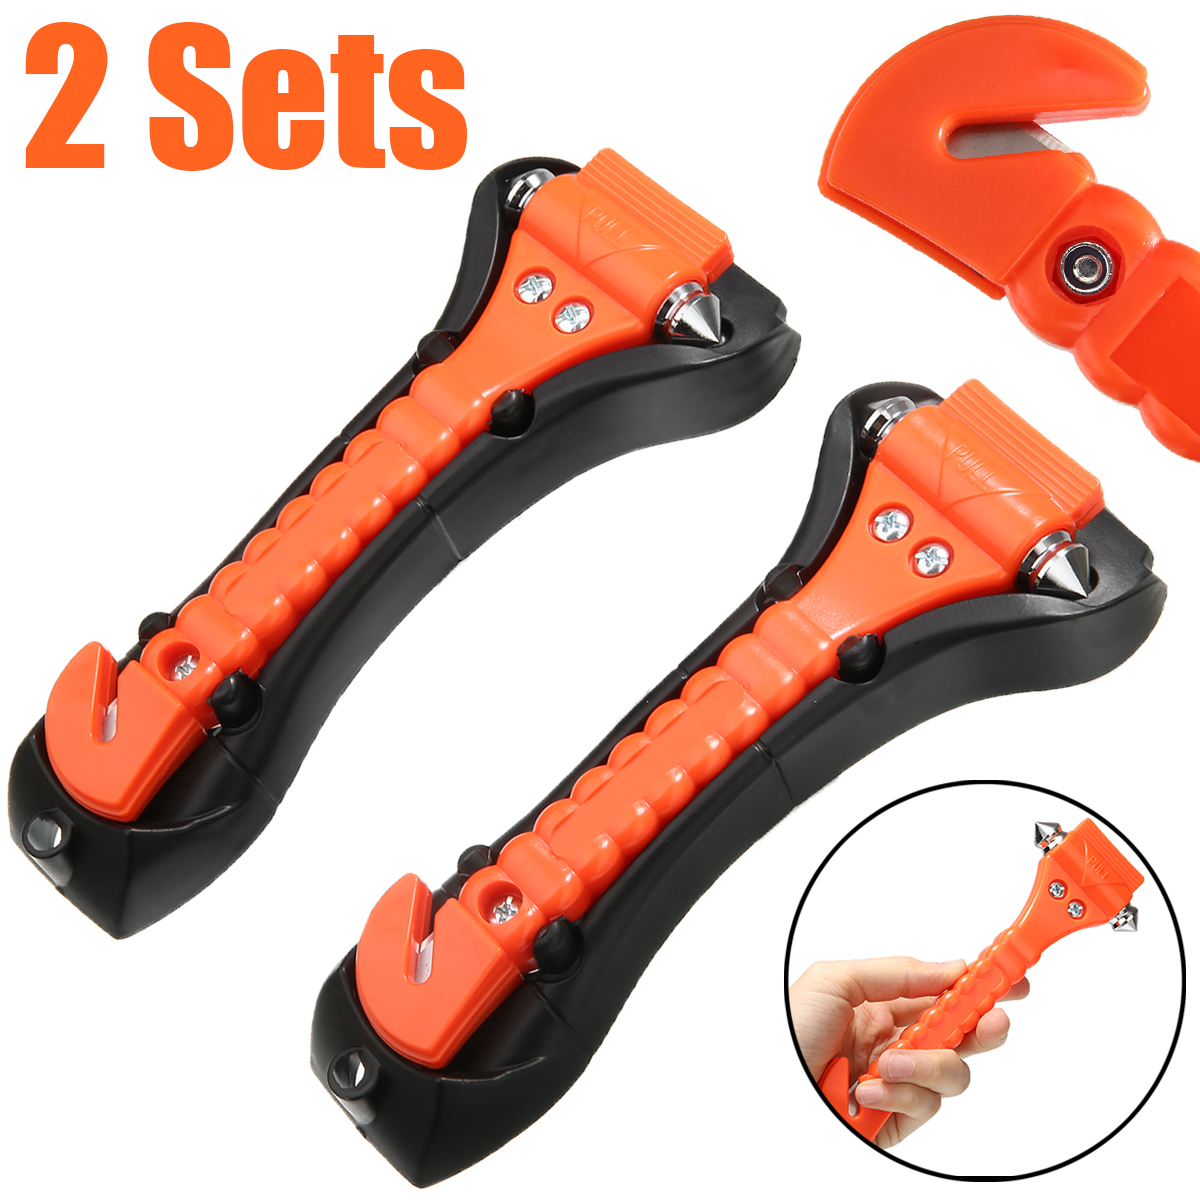 2 sets 2 in 1 Car Safety Rescue Hammer Life Saving Escape Emergency Hammer Seat Belt Cutter Window Glass Breaker High Quality in Hammer from Tools